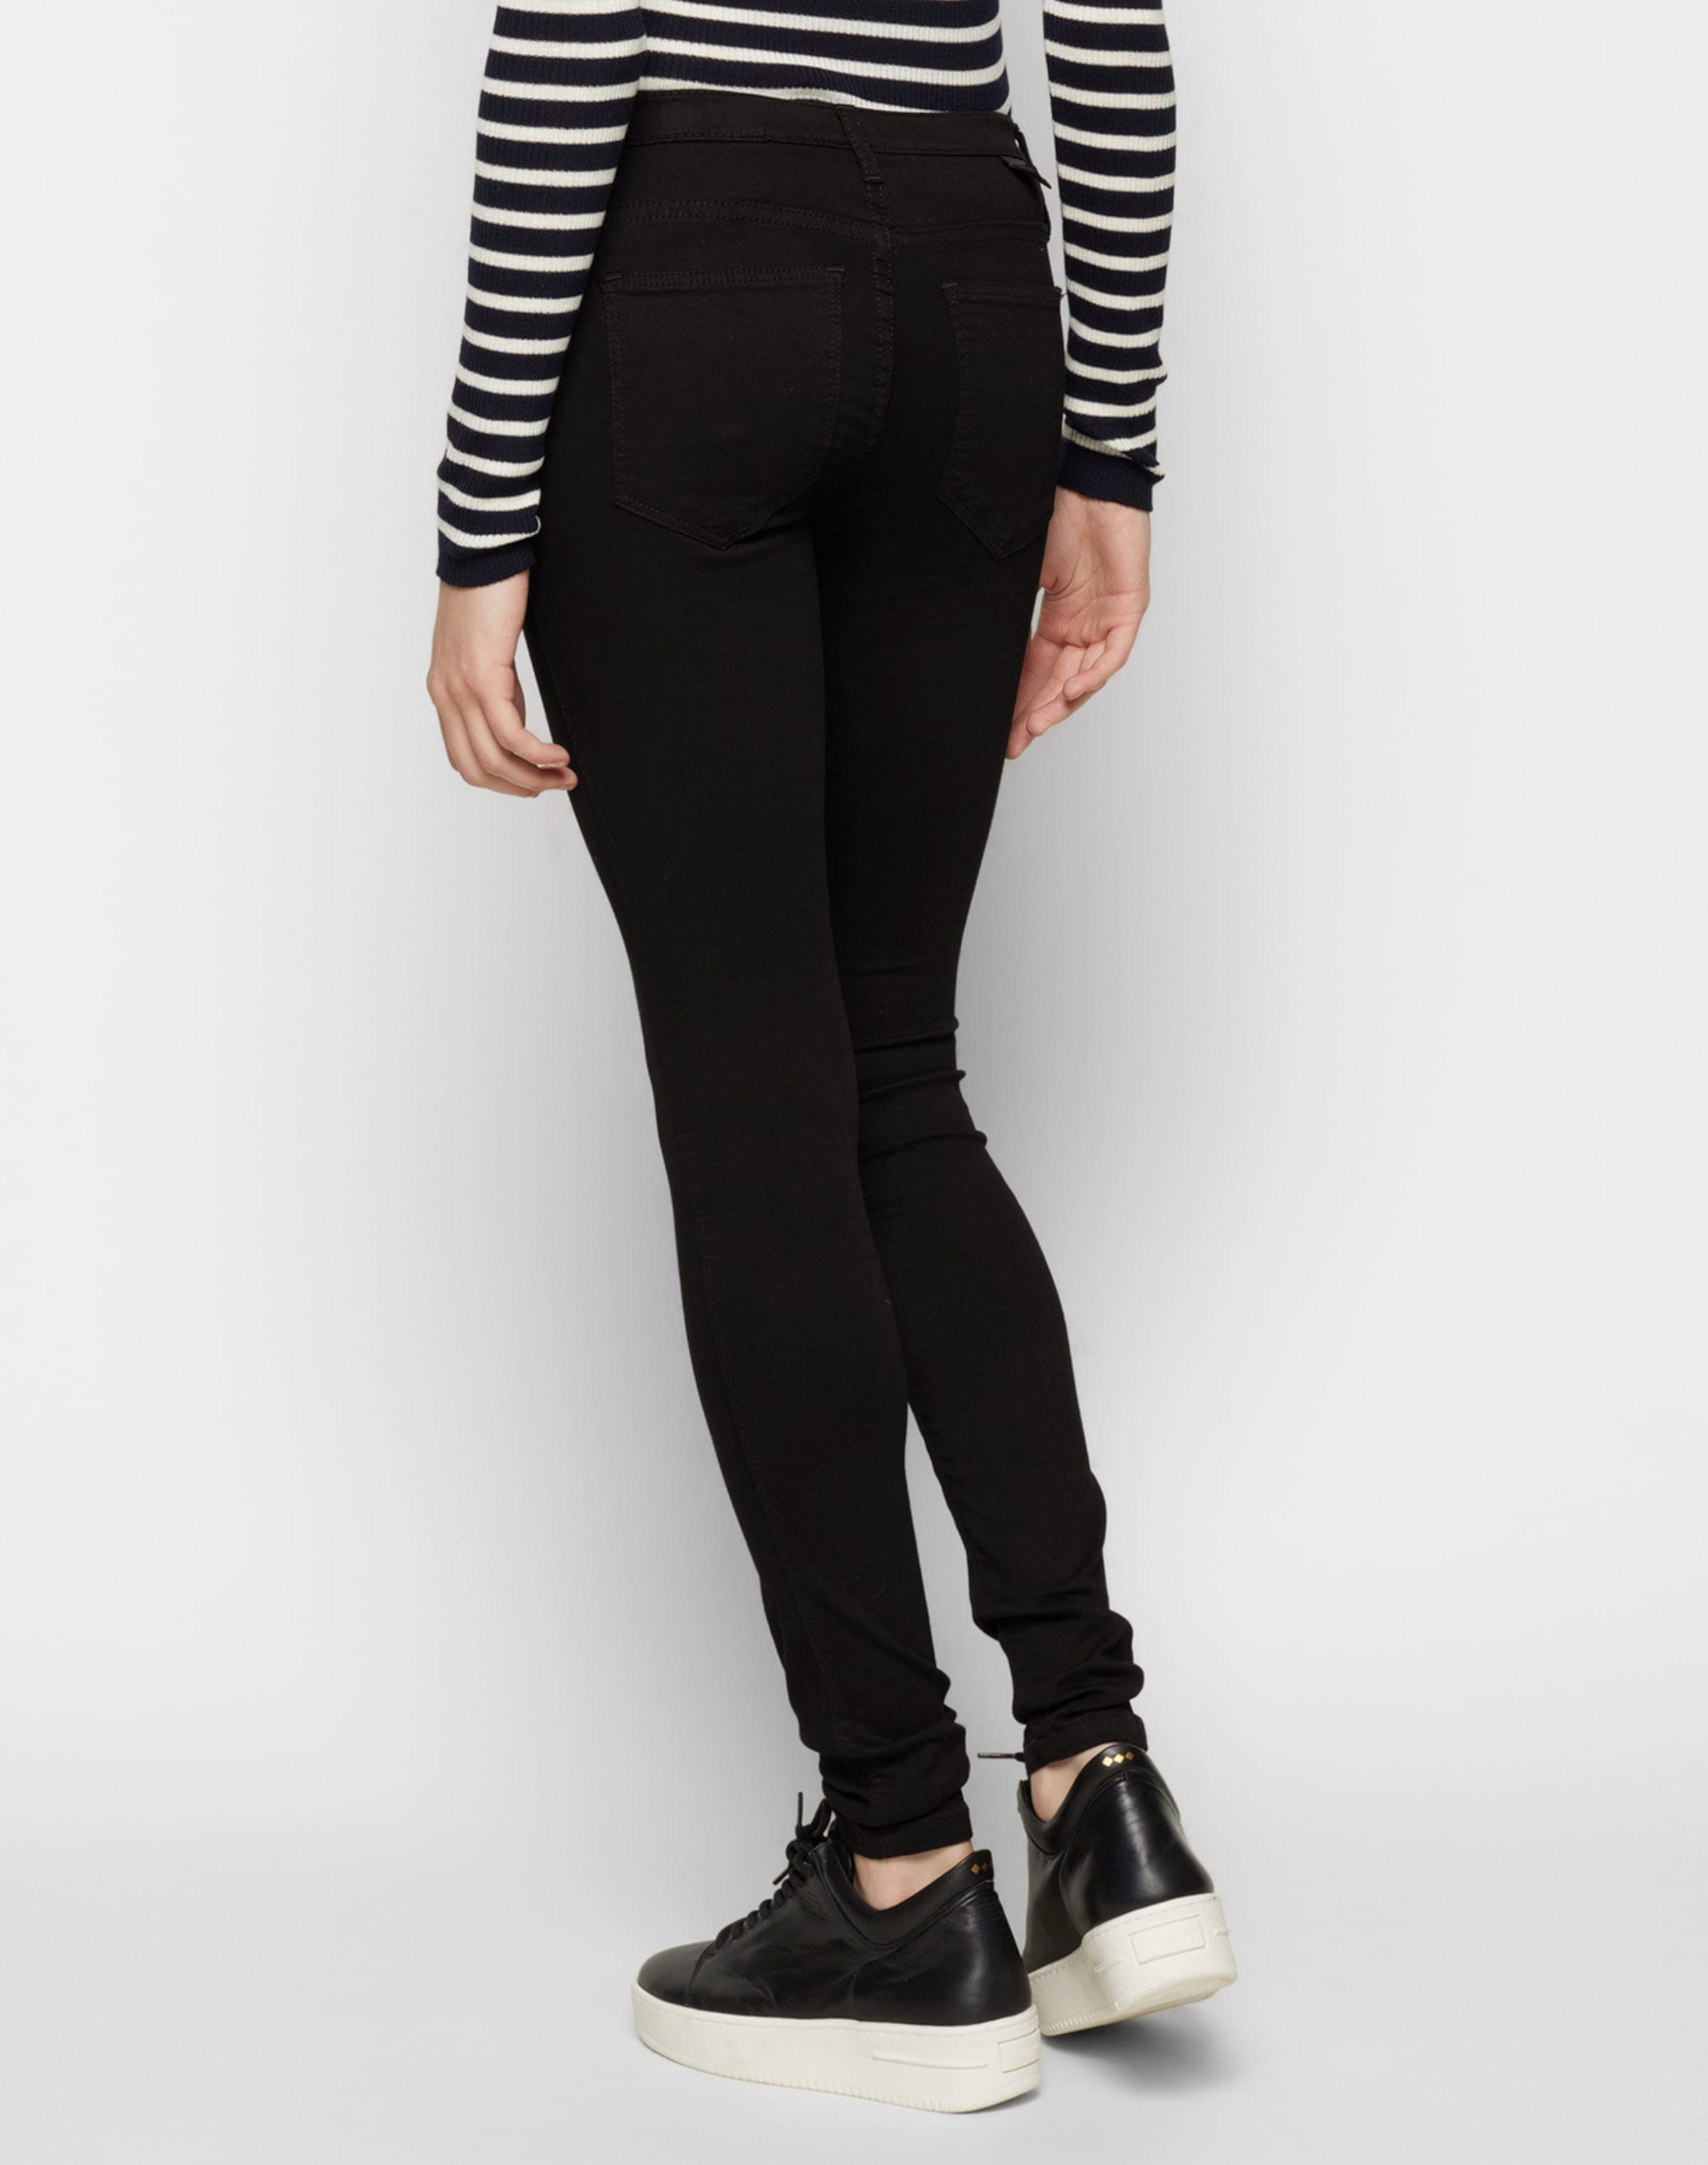 Jeggings Schwarz In Schwarz DrDenim In 'kissy' 'kissy' Jeggings DrDenim pGqUMSLzV